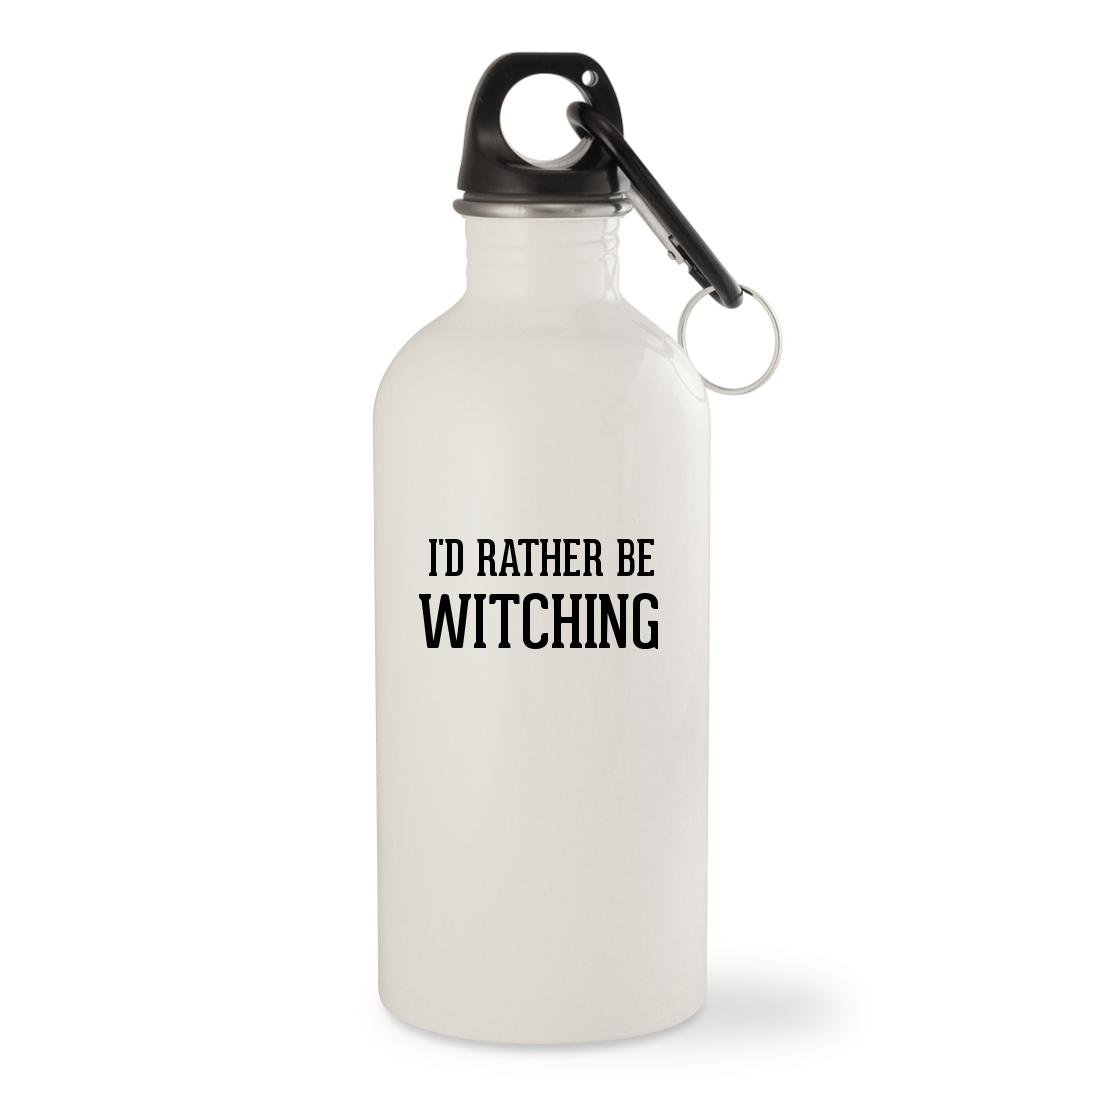 I'd Rather Be WITCHING - White 20oz Stainless Steel Water Bottle with Carabiner by Molandra Products (Image #1)